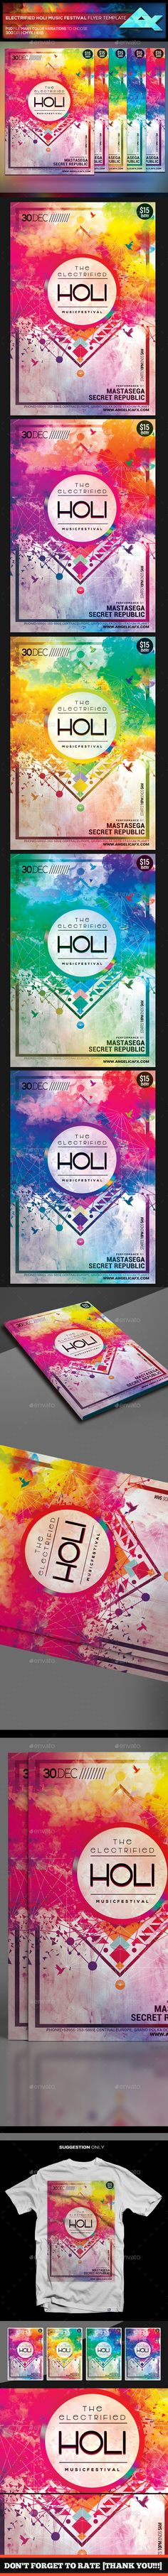 The Electrified Holi Music Festival Flyer Template PSD